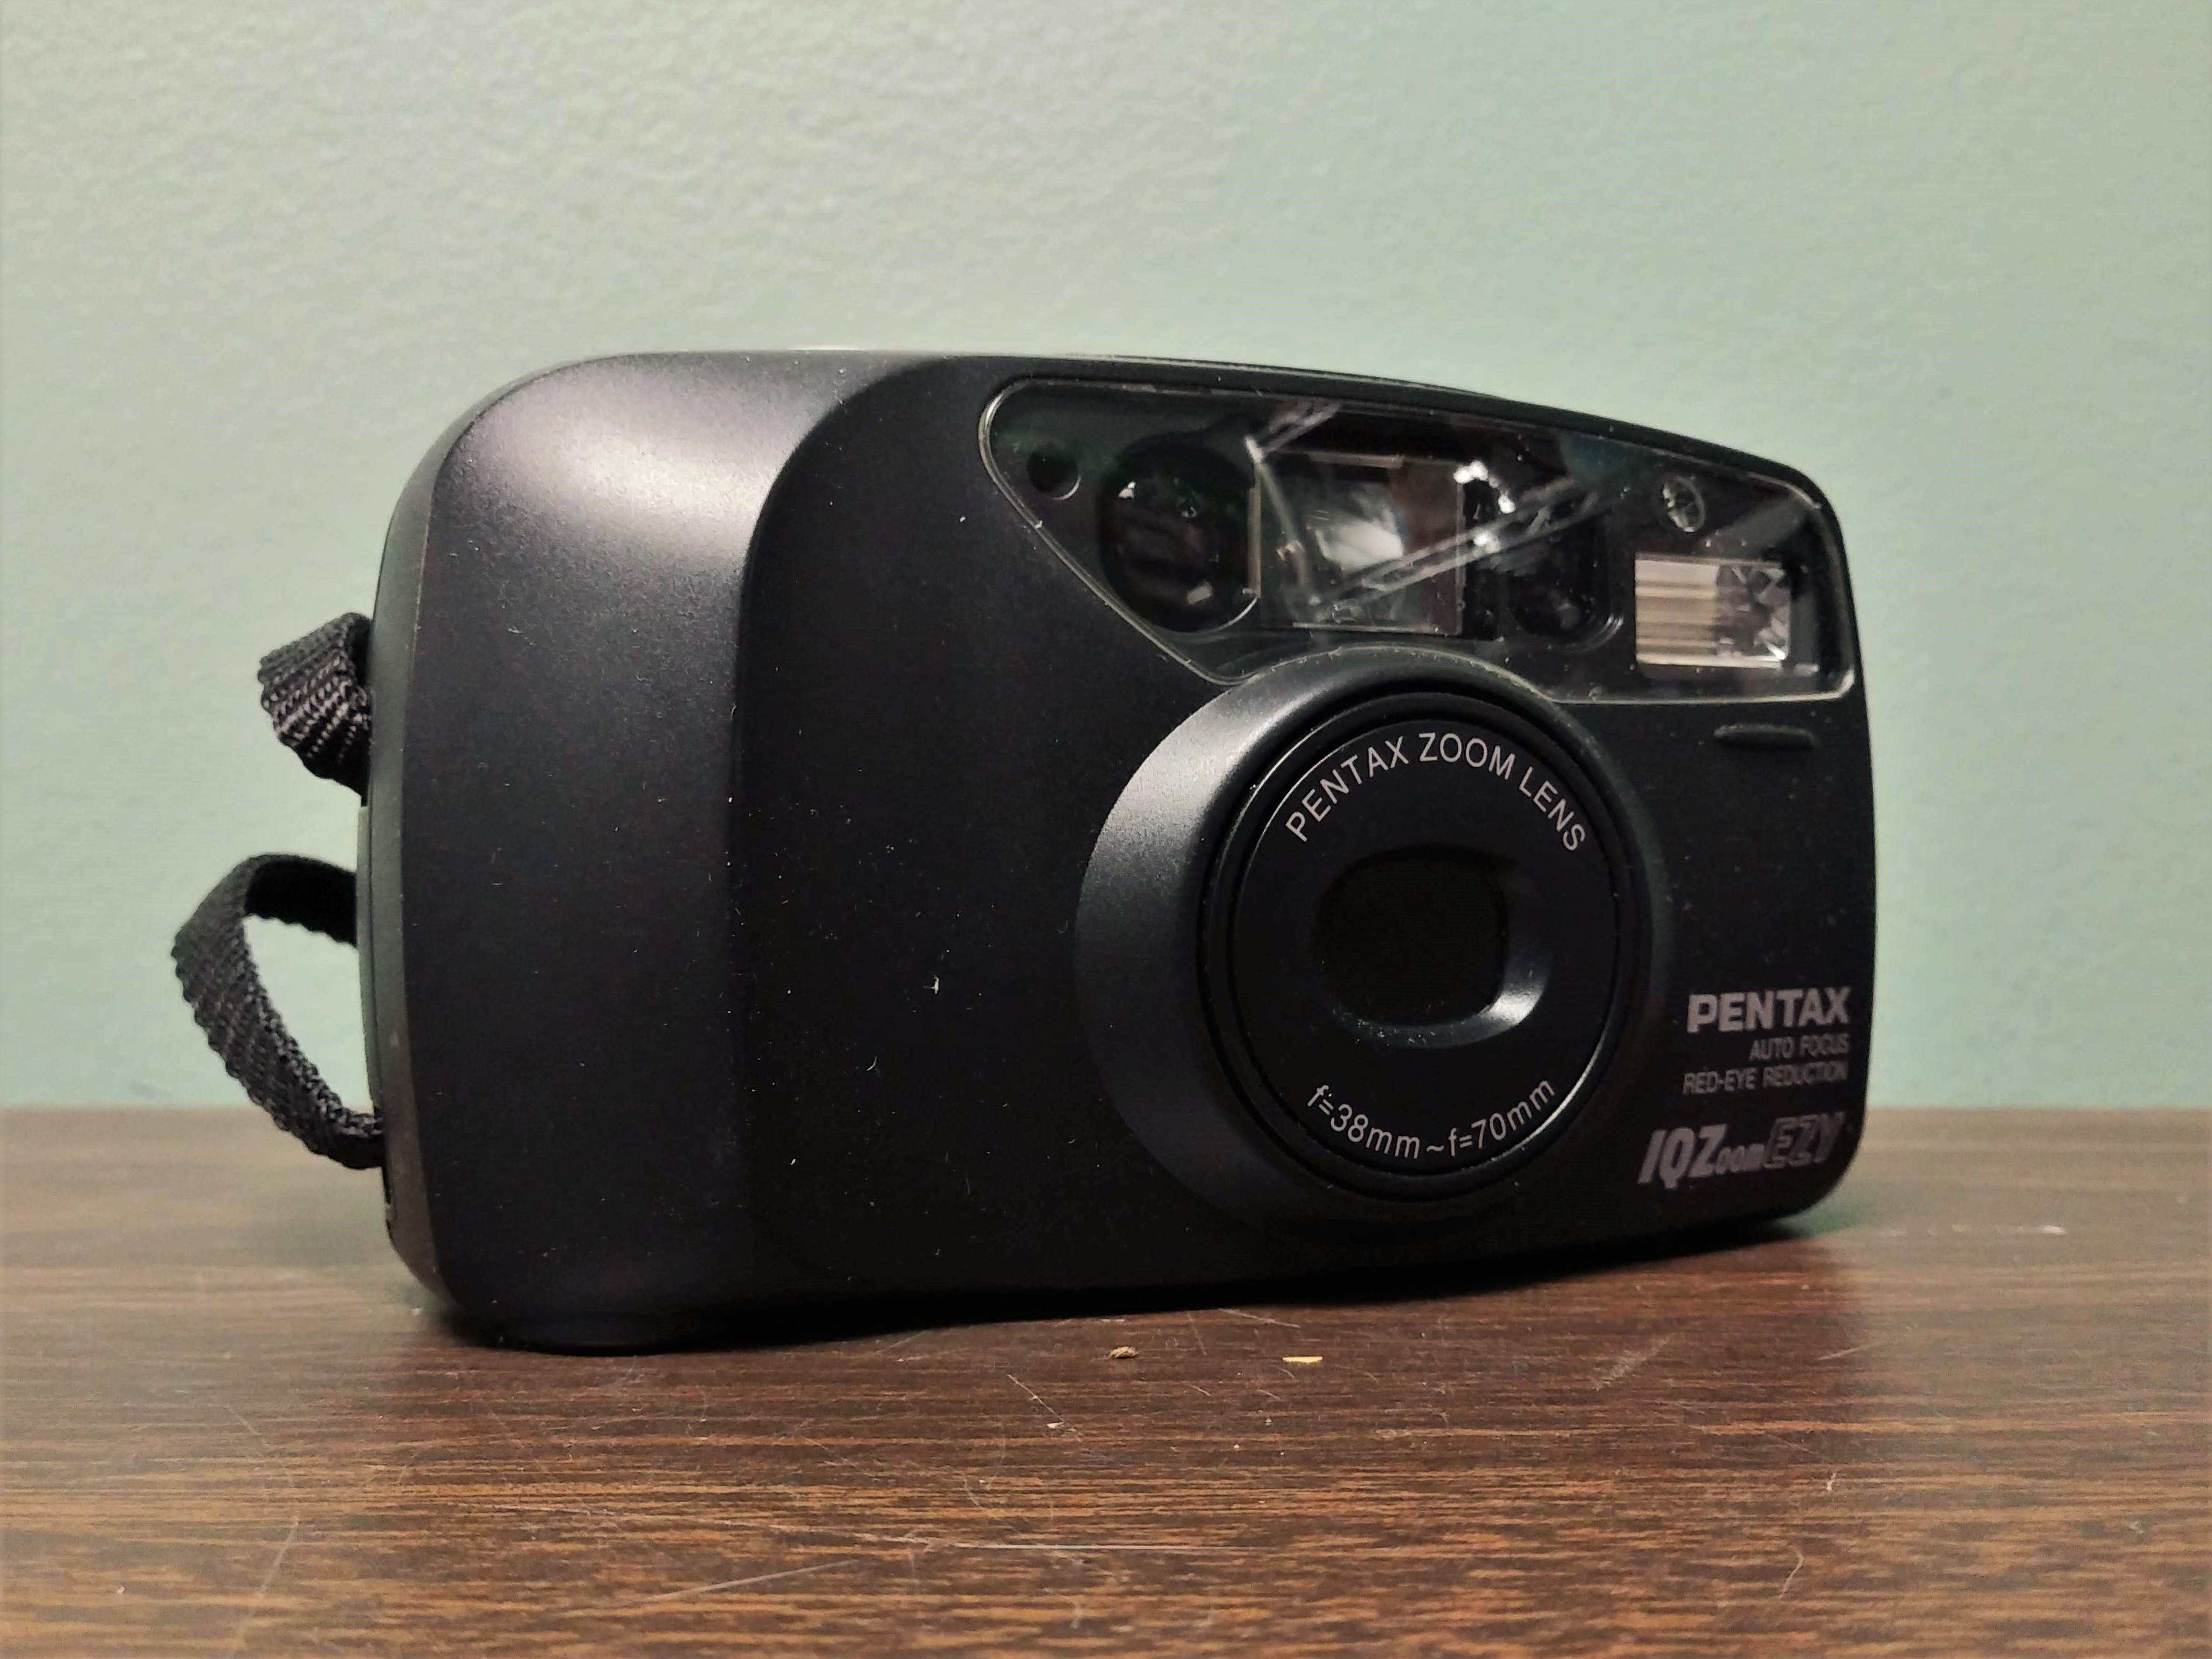 Pentax Point-and-Shoot Camera